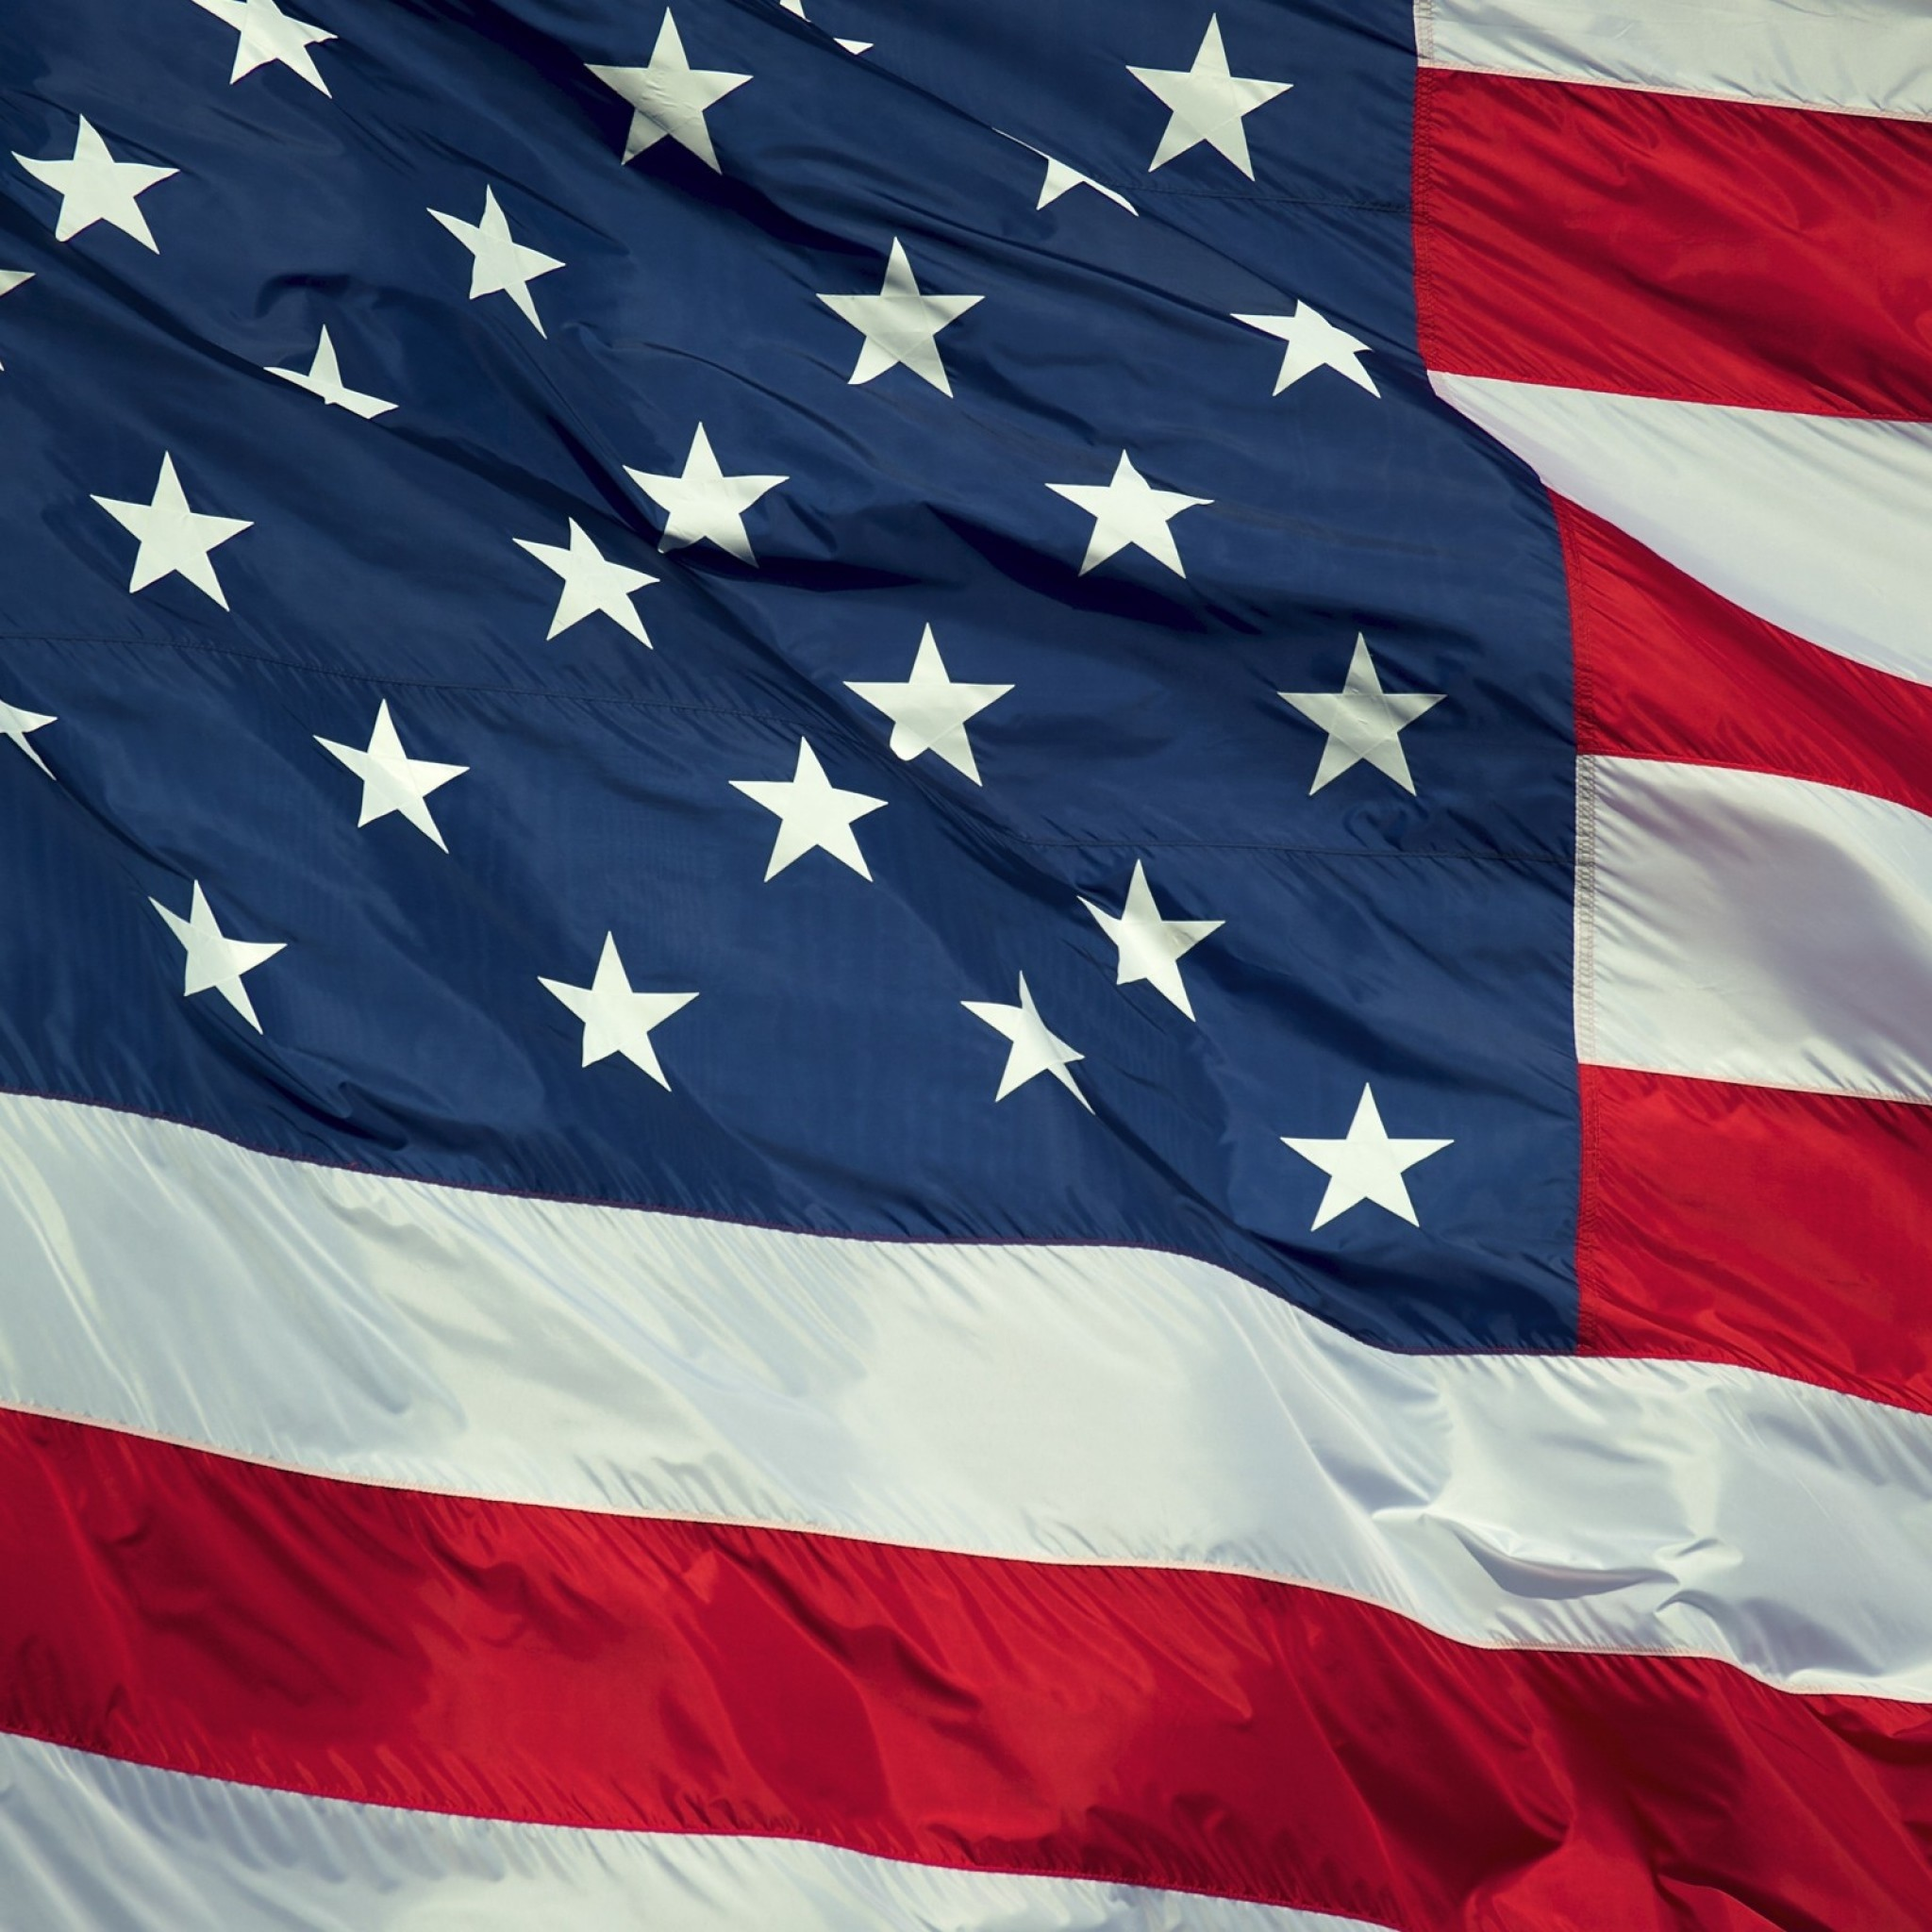 2048x2048 Related Wallpapers flag, confederacy. Preview flag